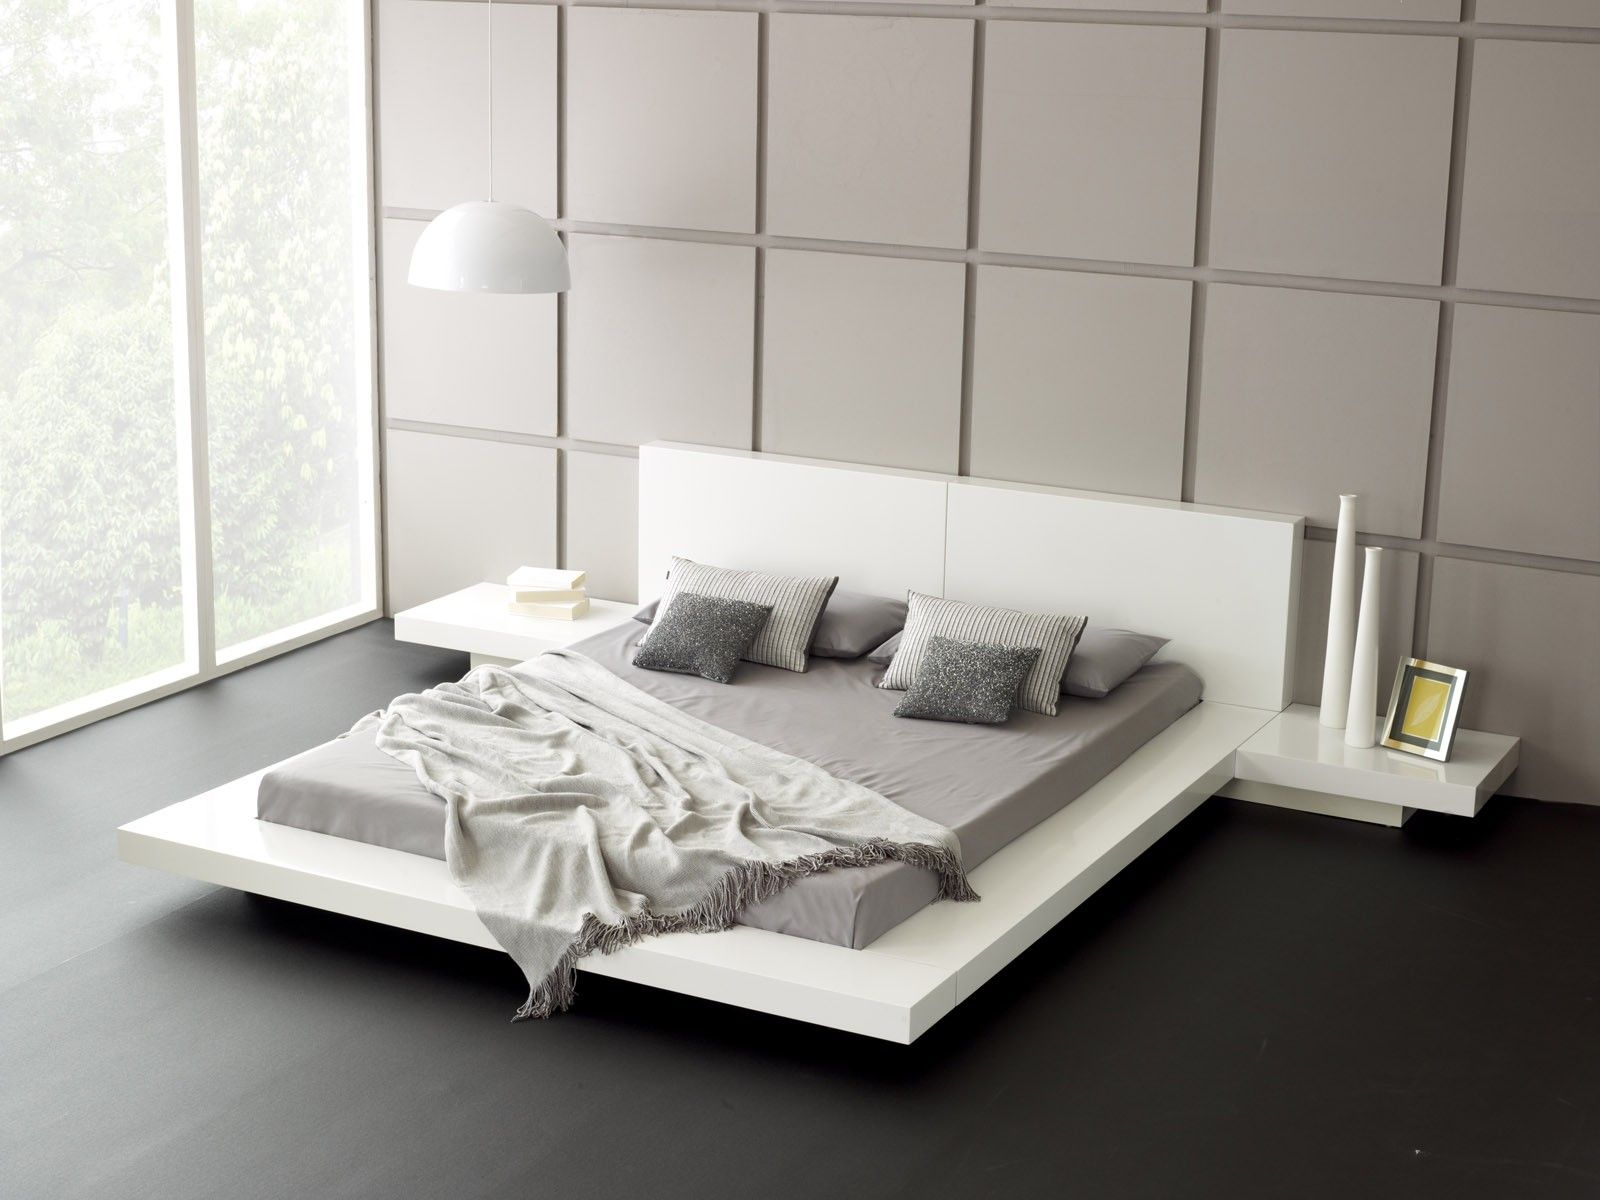 white and grey bedroom ideas – transforming your boring room into